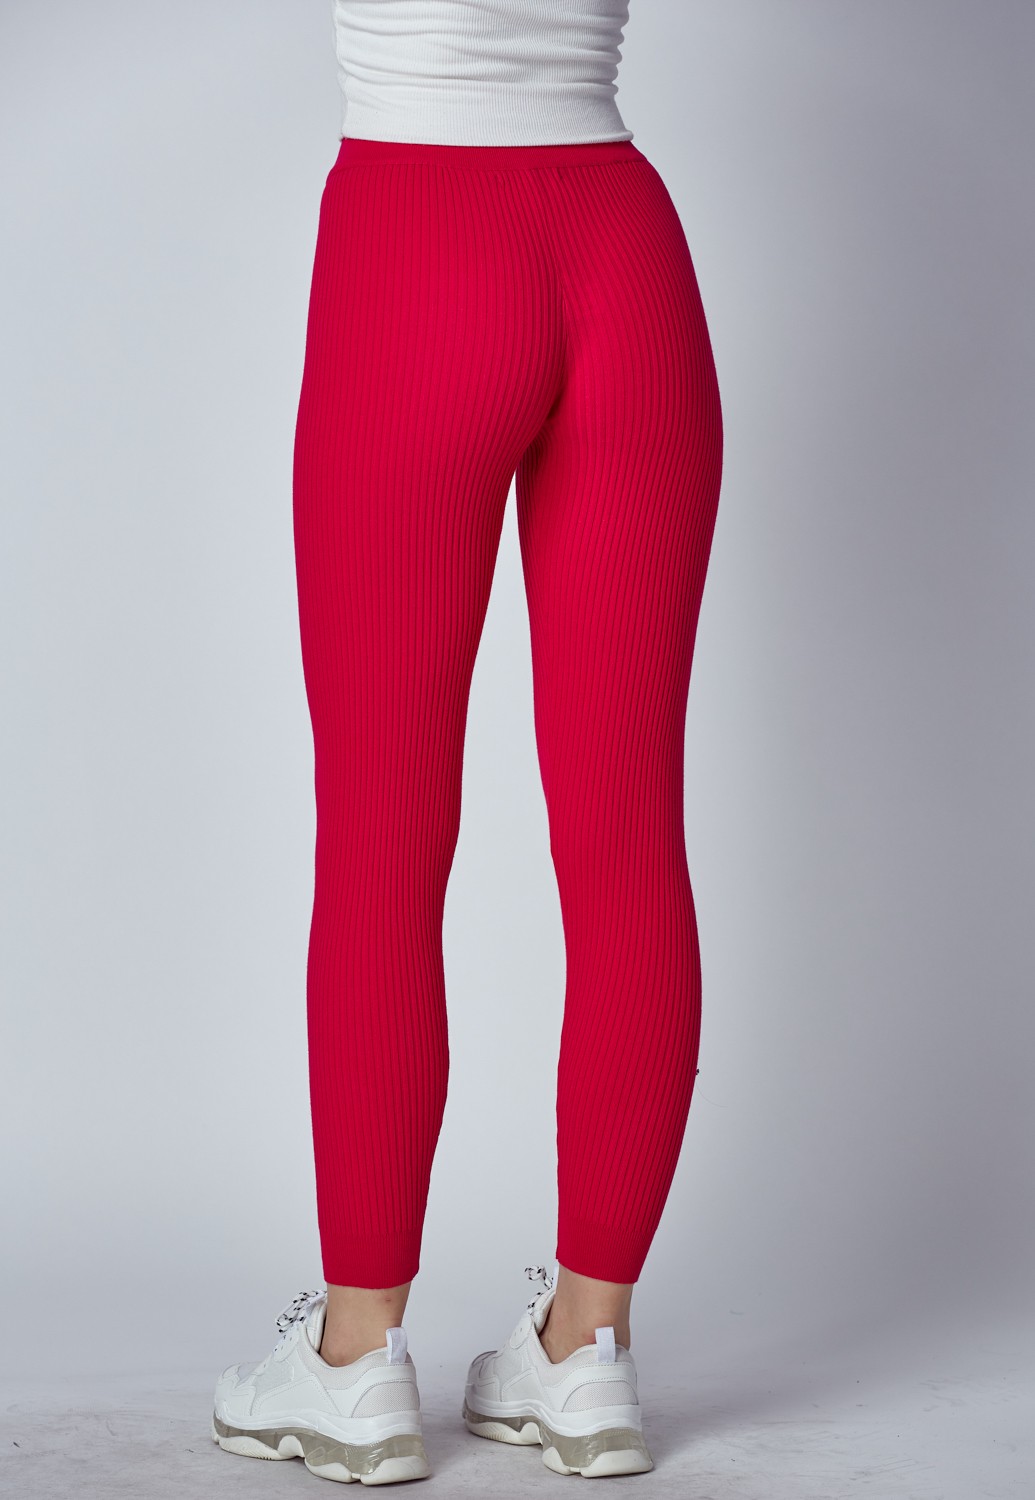 High Waist Rib-Kint Legging Pants